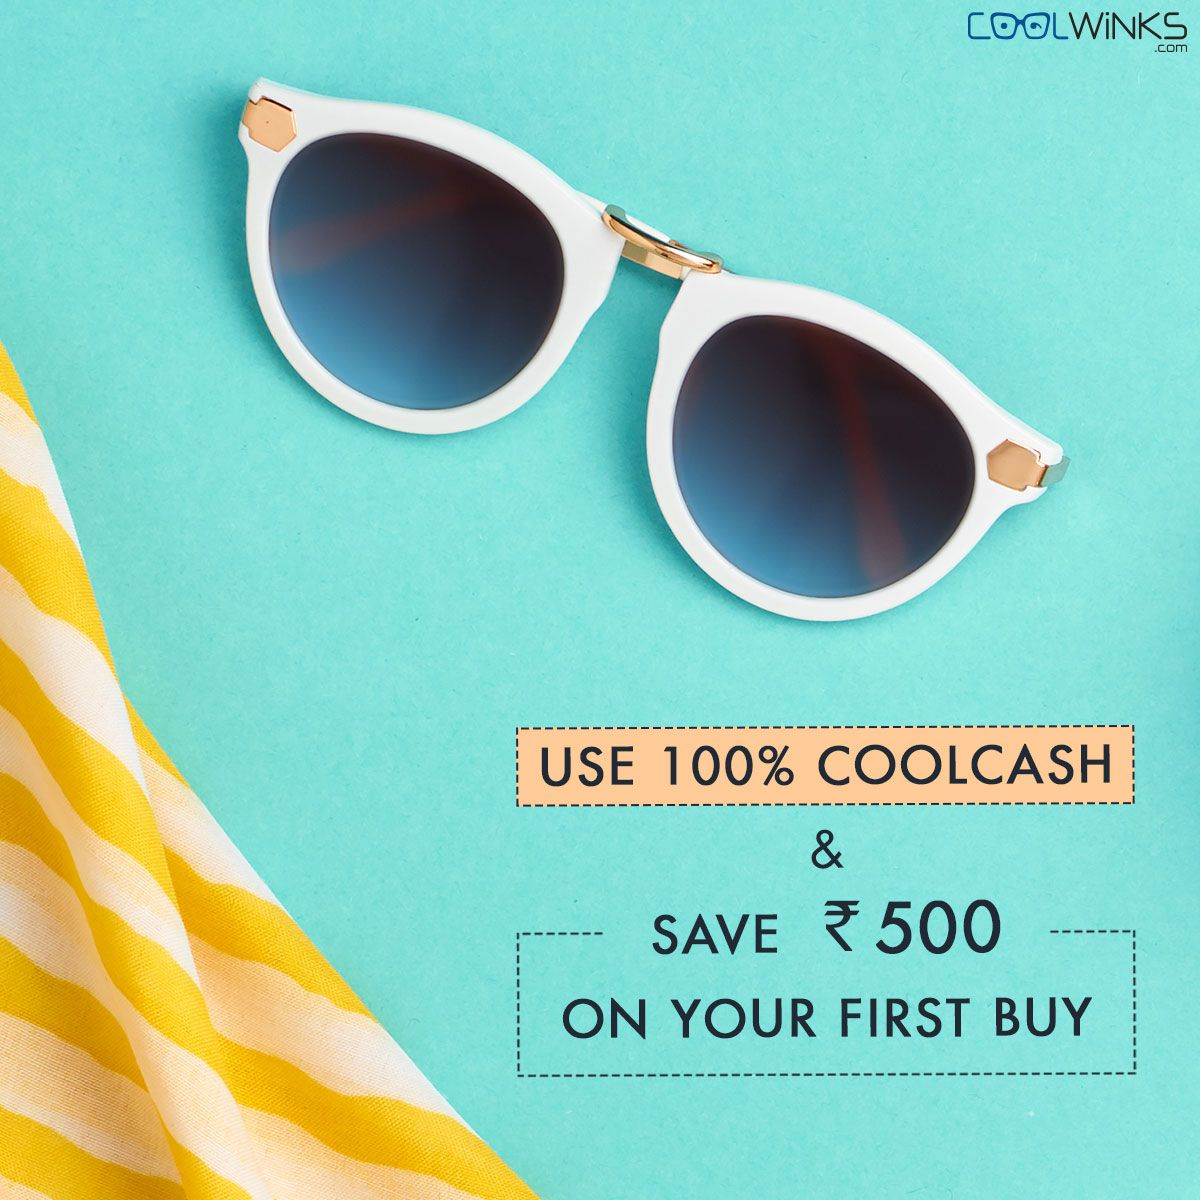 d783f543d1d Buy One Get One Offer on all Branded Sunglasses  Coolwinks Sale. Use 100%   CoolCash   Save UPTO Rs.500 on your first purchase. Shop Now.